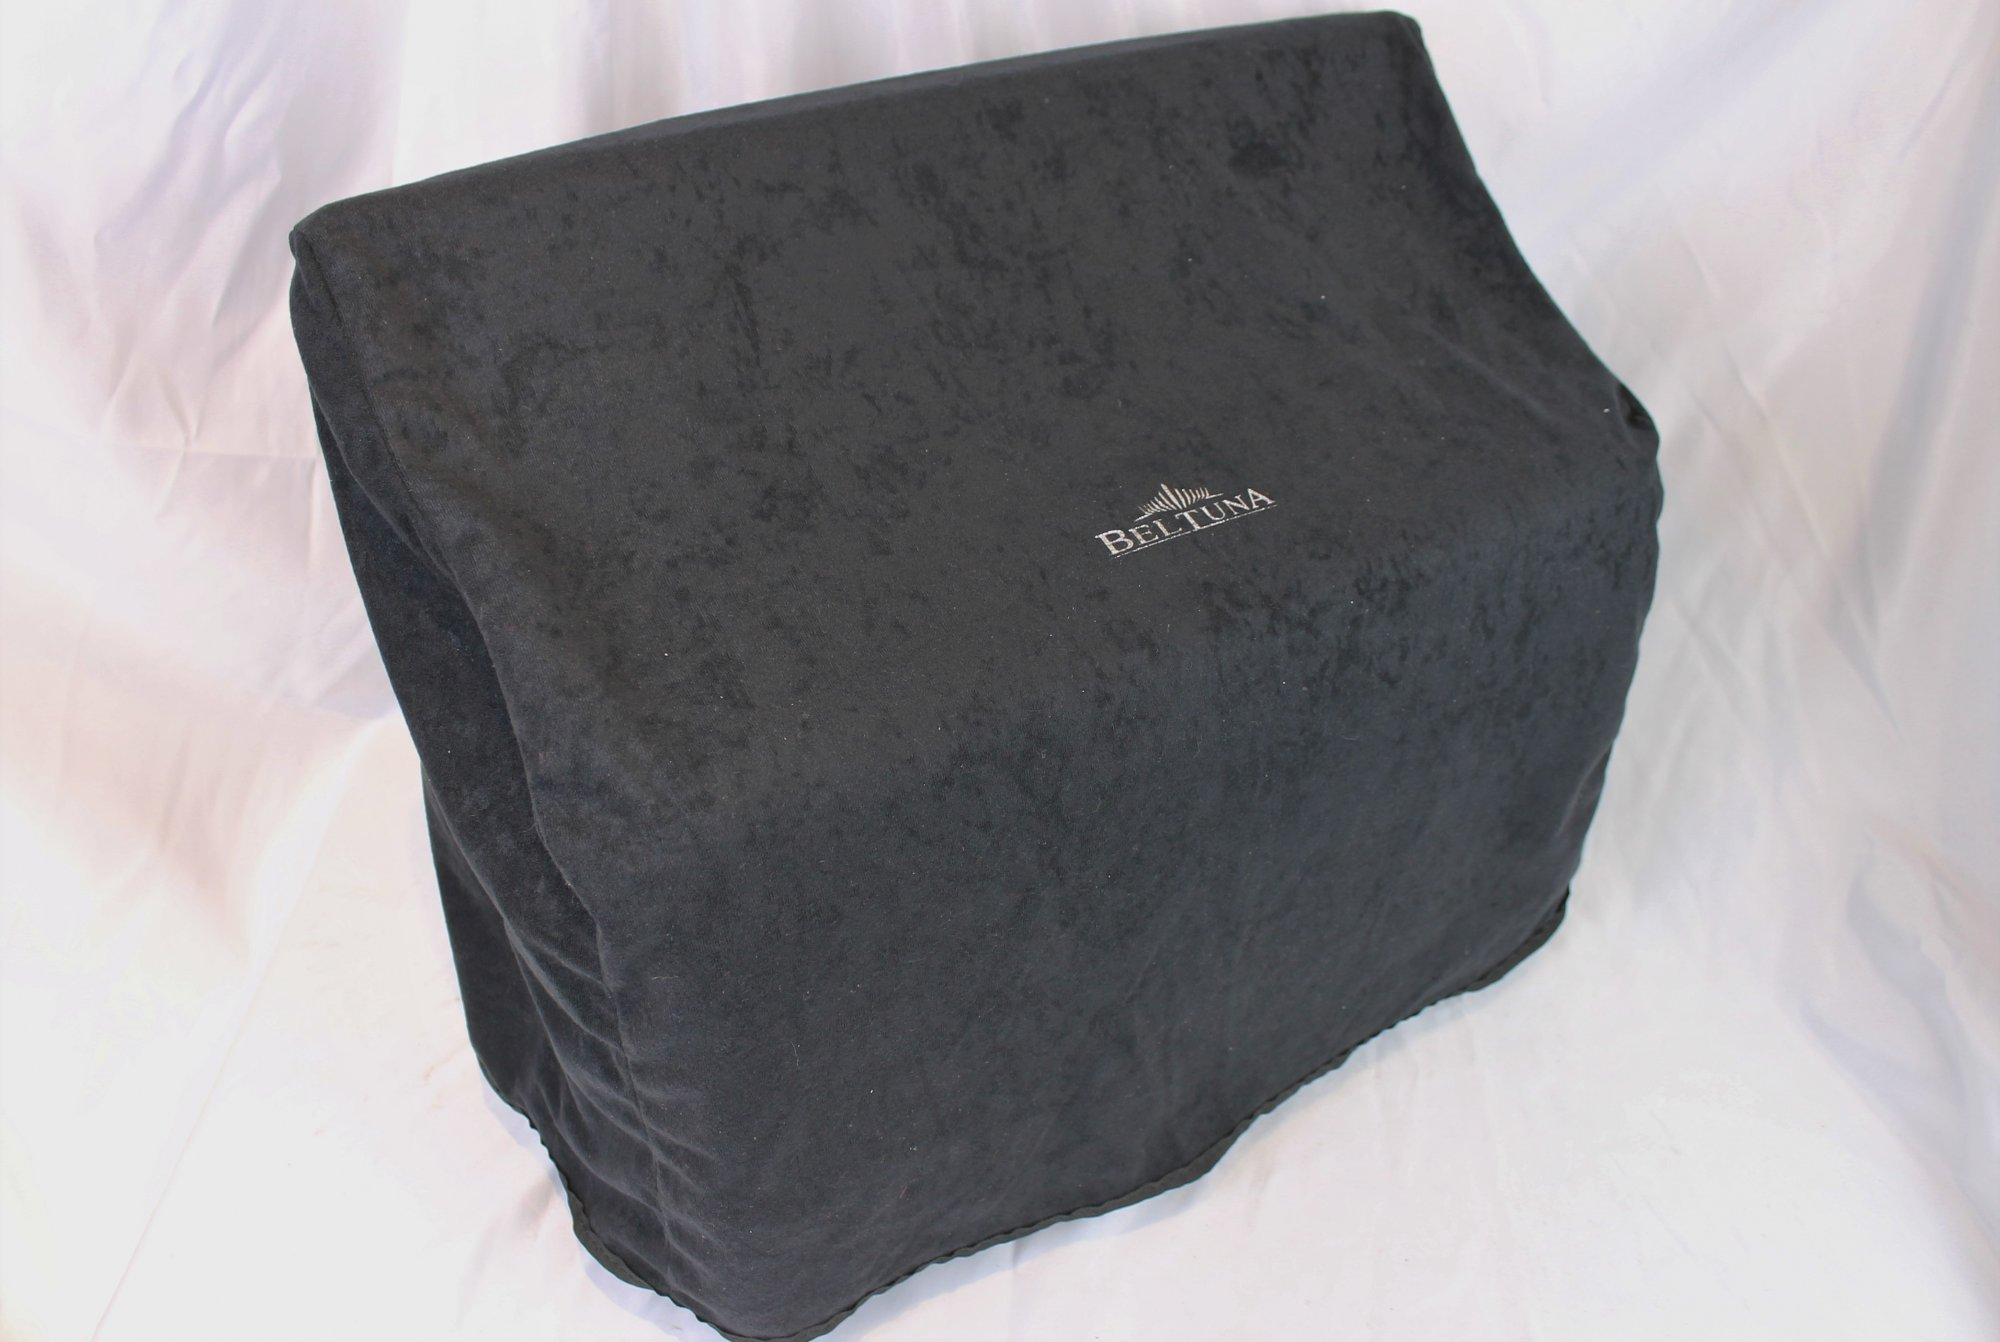 NEW Beltuna Velour Dust Cover for Accordion - Large 21.5 x 17.5 x 9